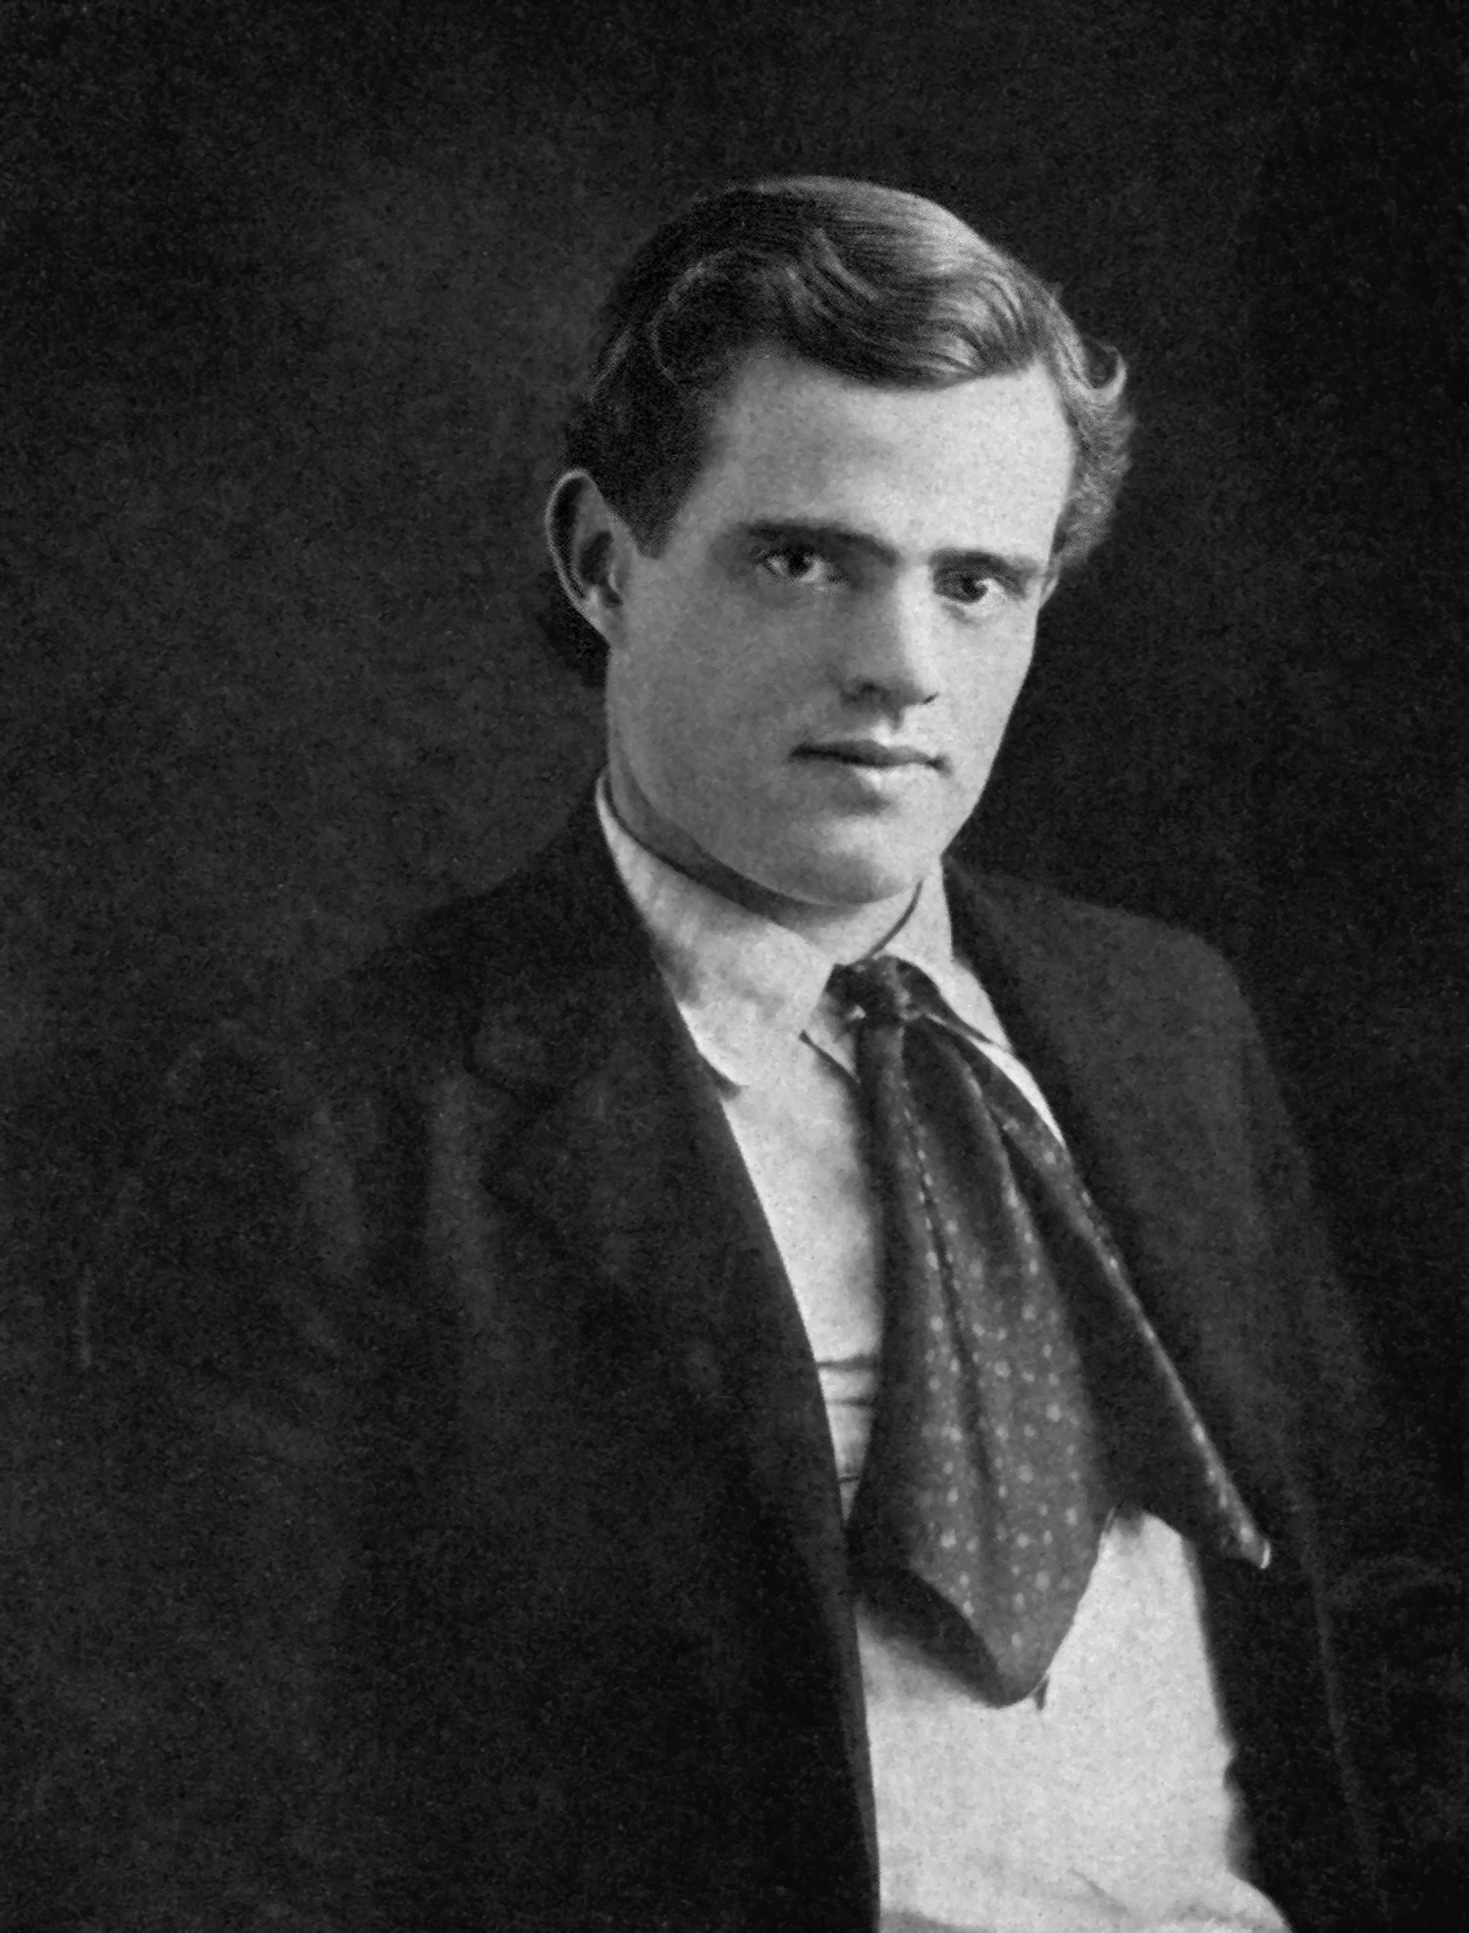 Jack London - A Brief Biography